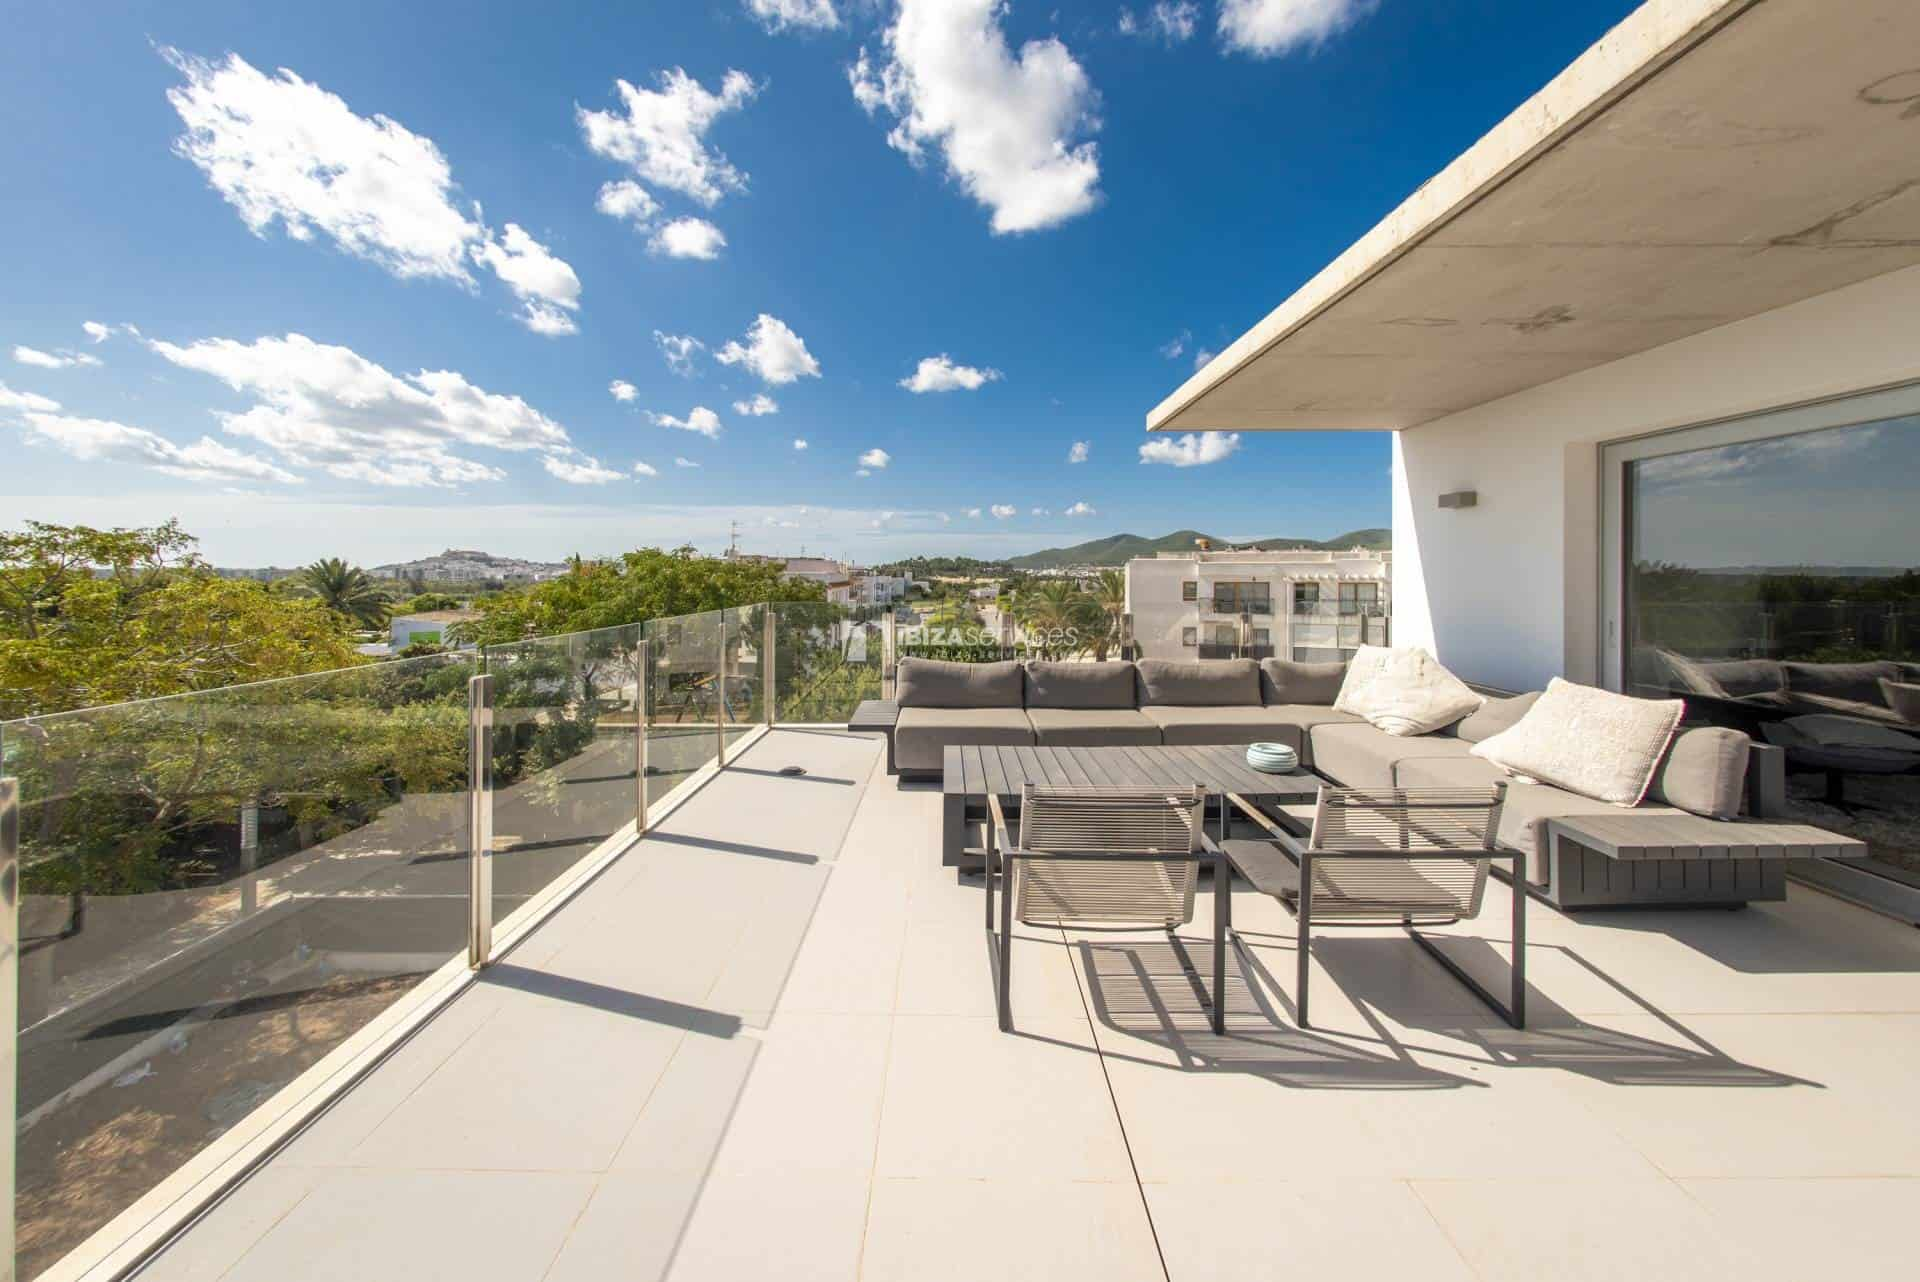 Modern penthouse 4 bedrooms for sale Jesus perspectiva 3